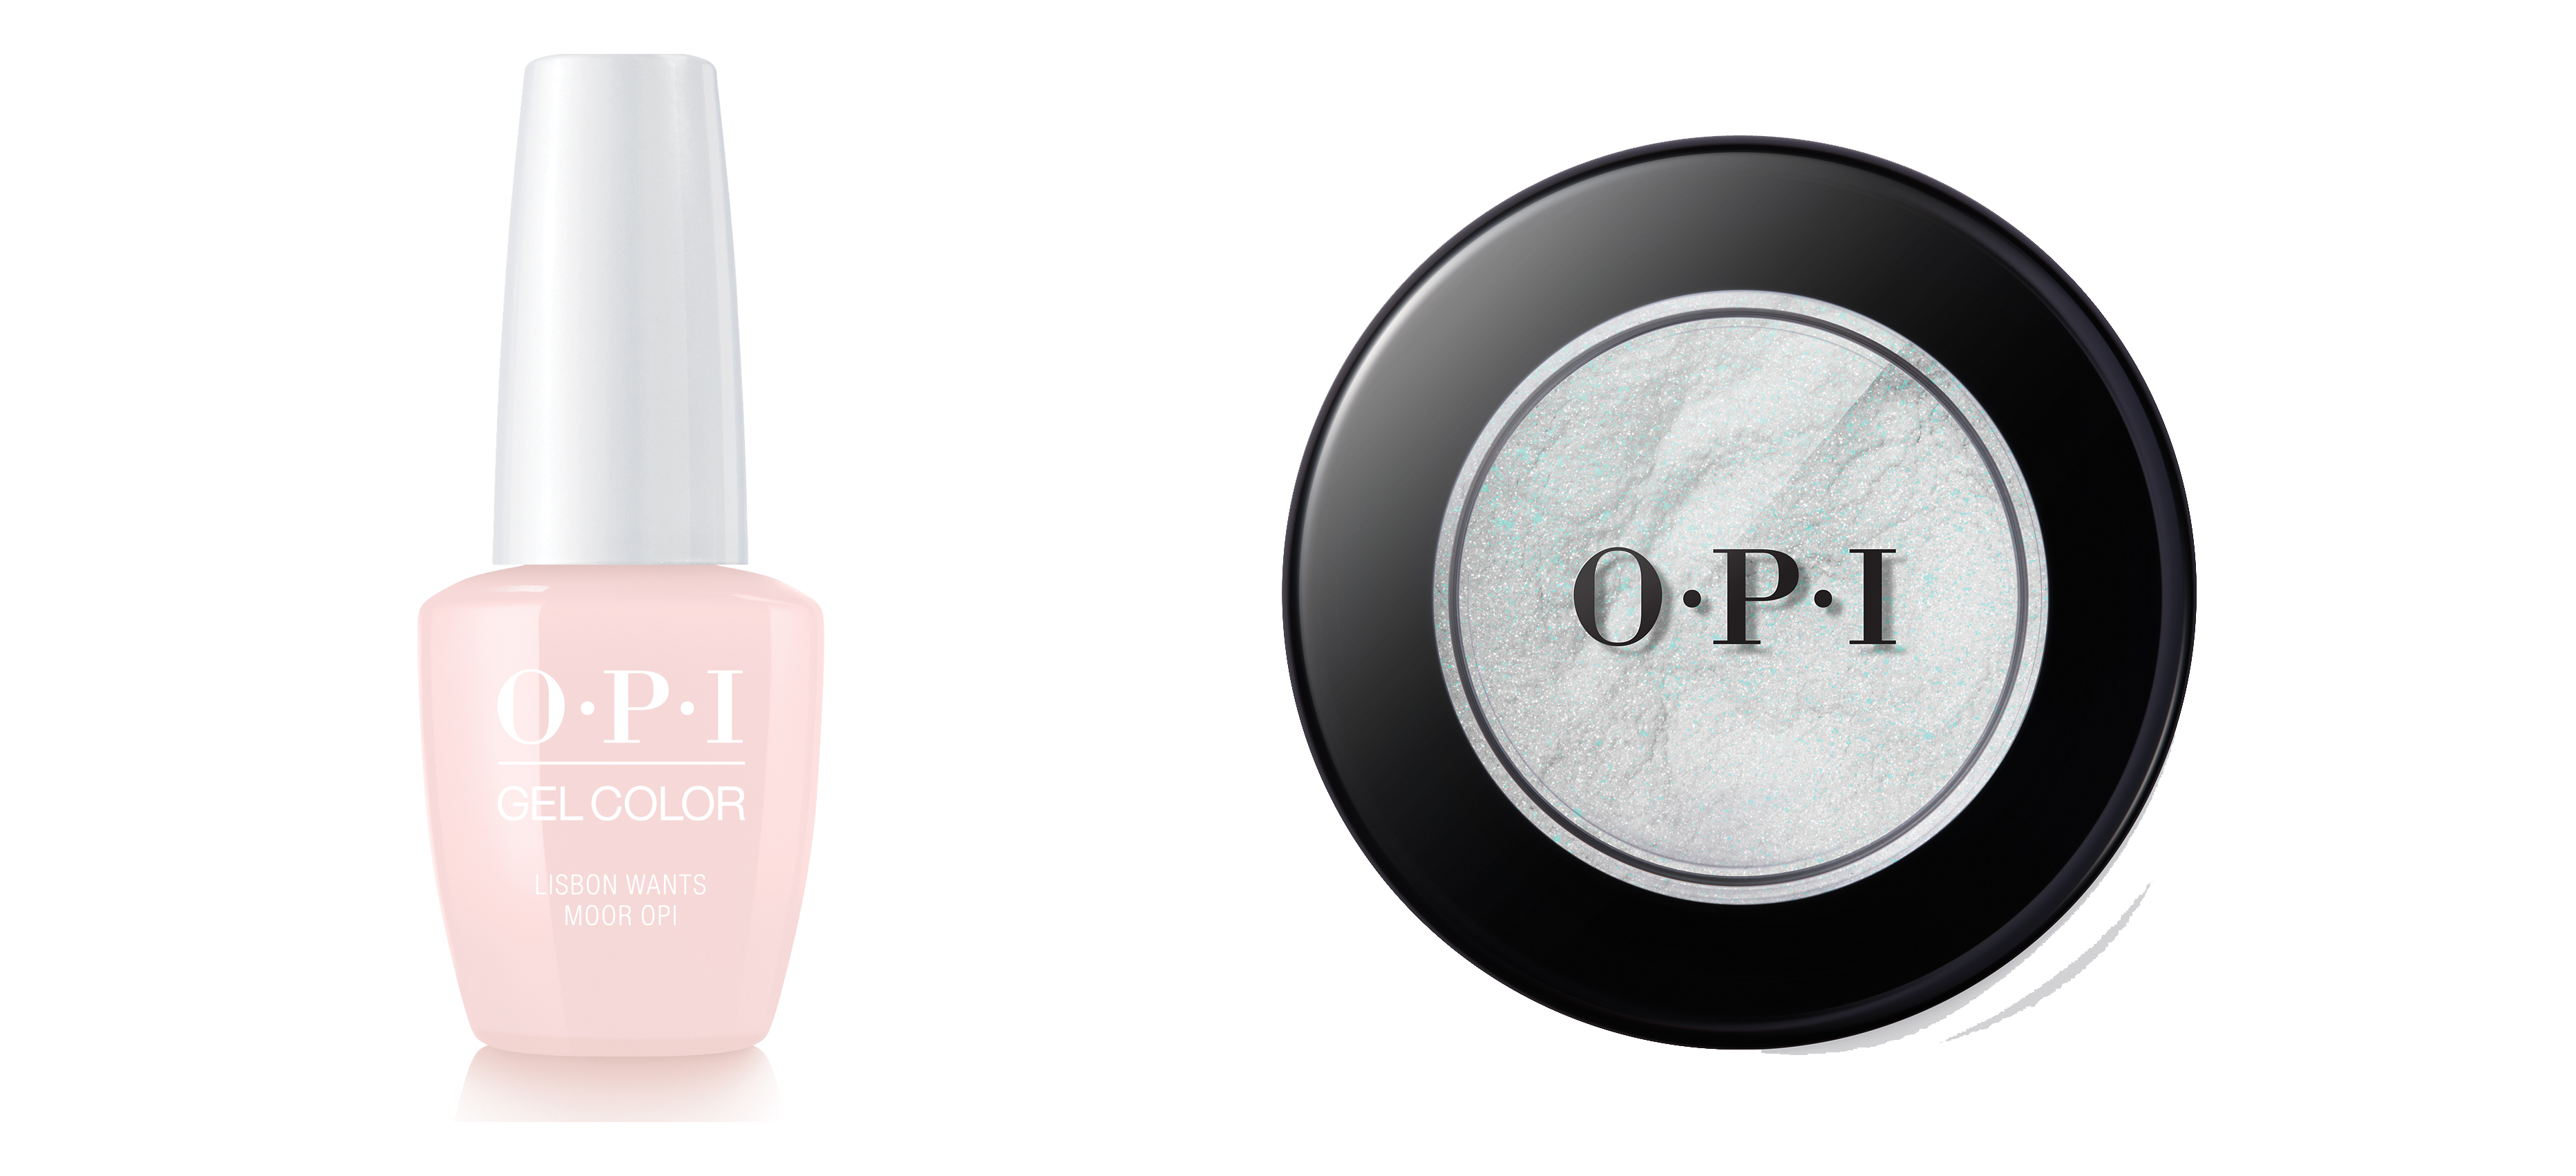 OPI Lisbon Wants Moor Nail Polish and Chrome Effects in Blue Plate Special